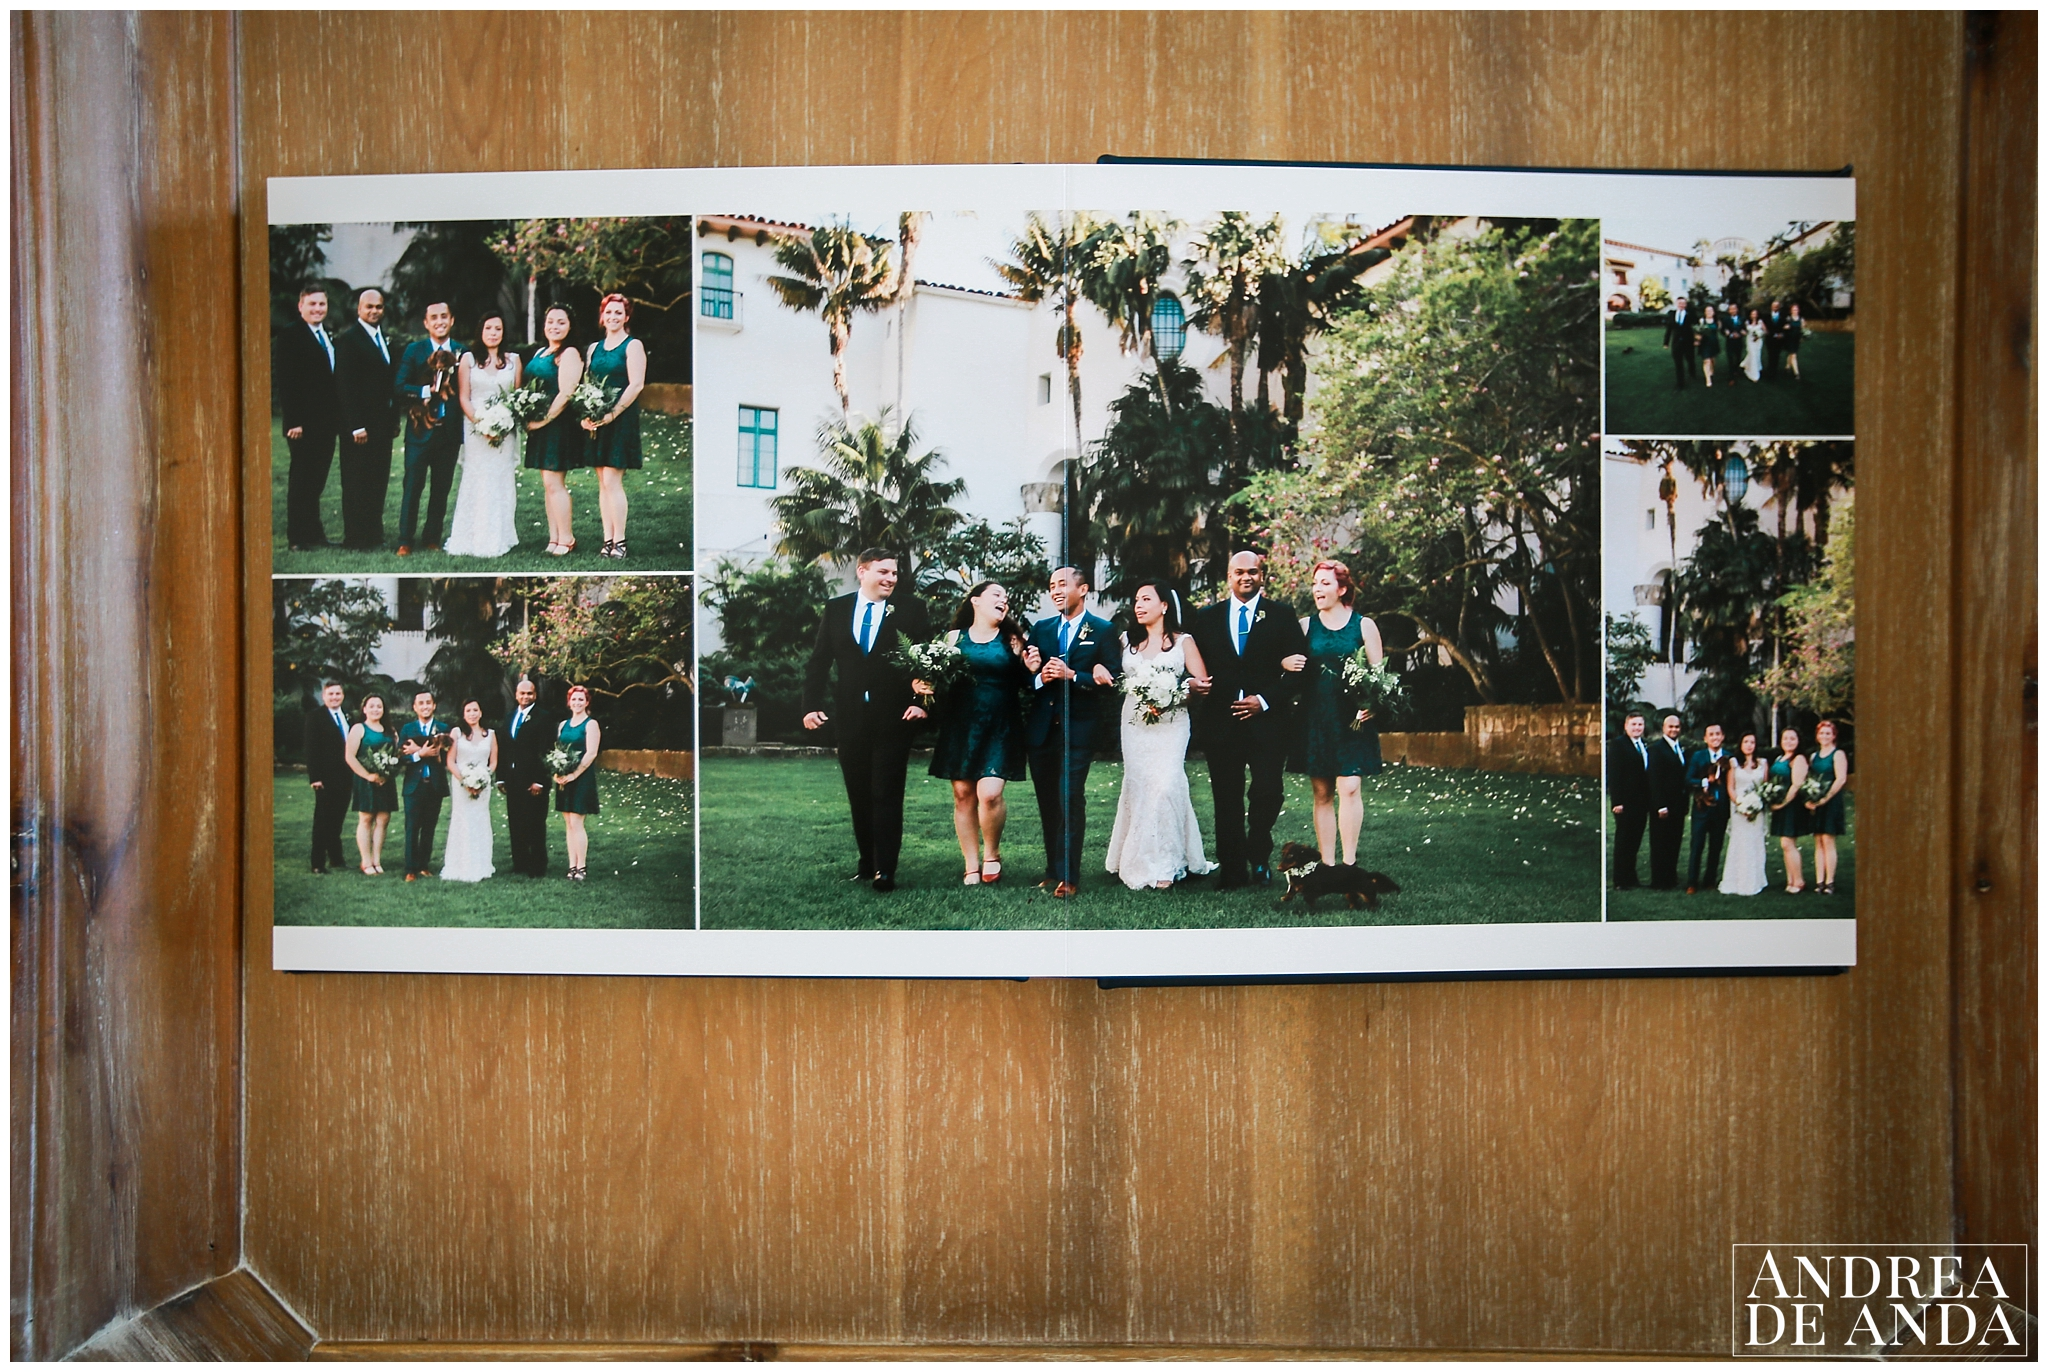 Andrea de Anda Photography_Wedding Album_0008.jpg